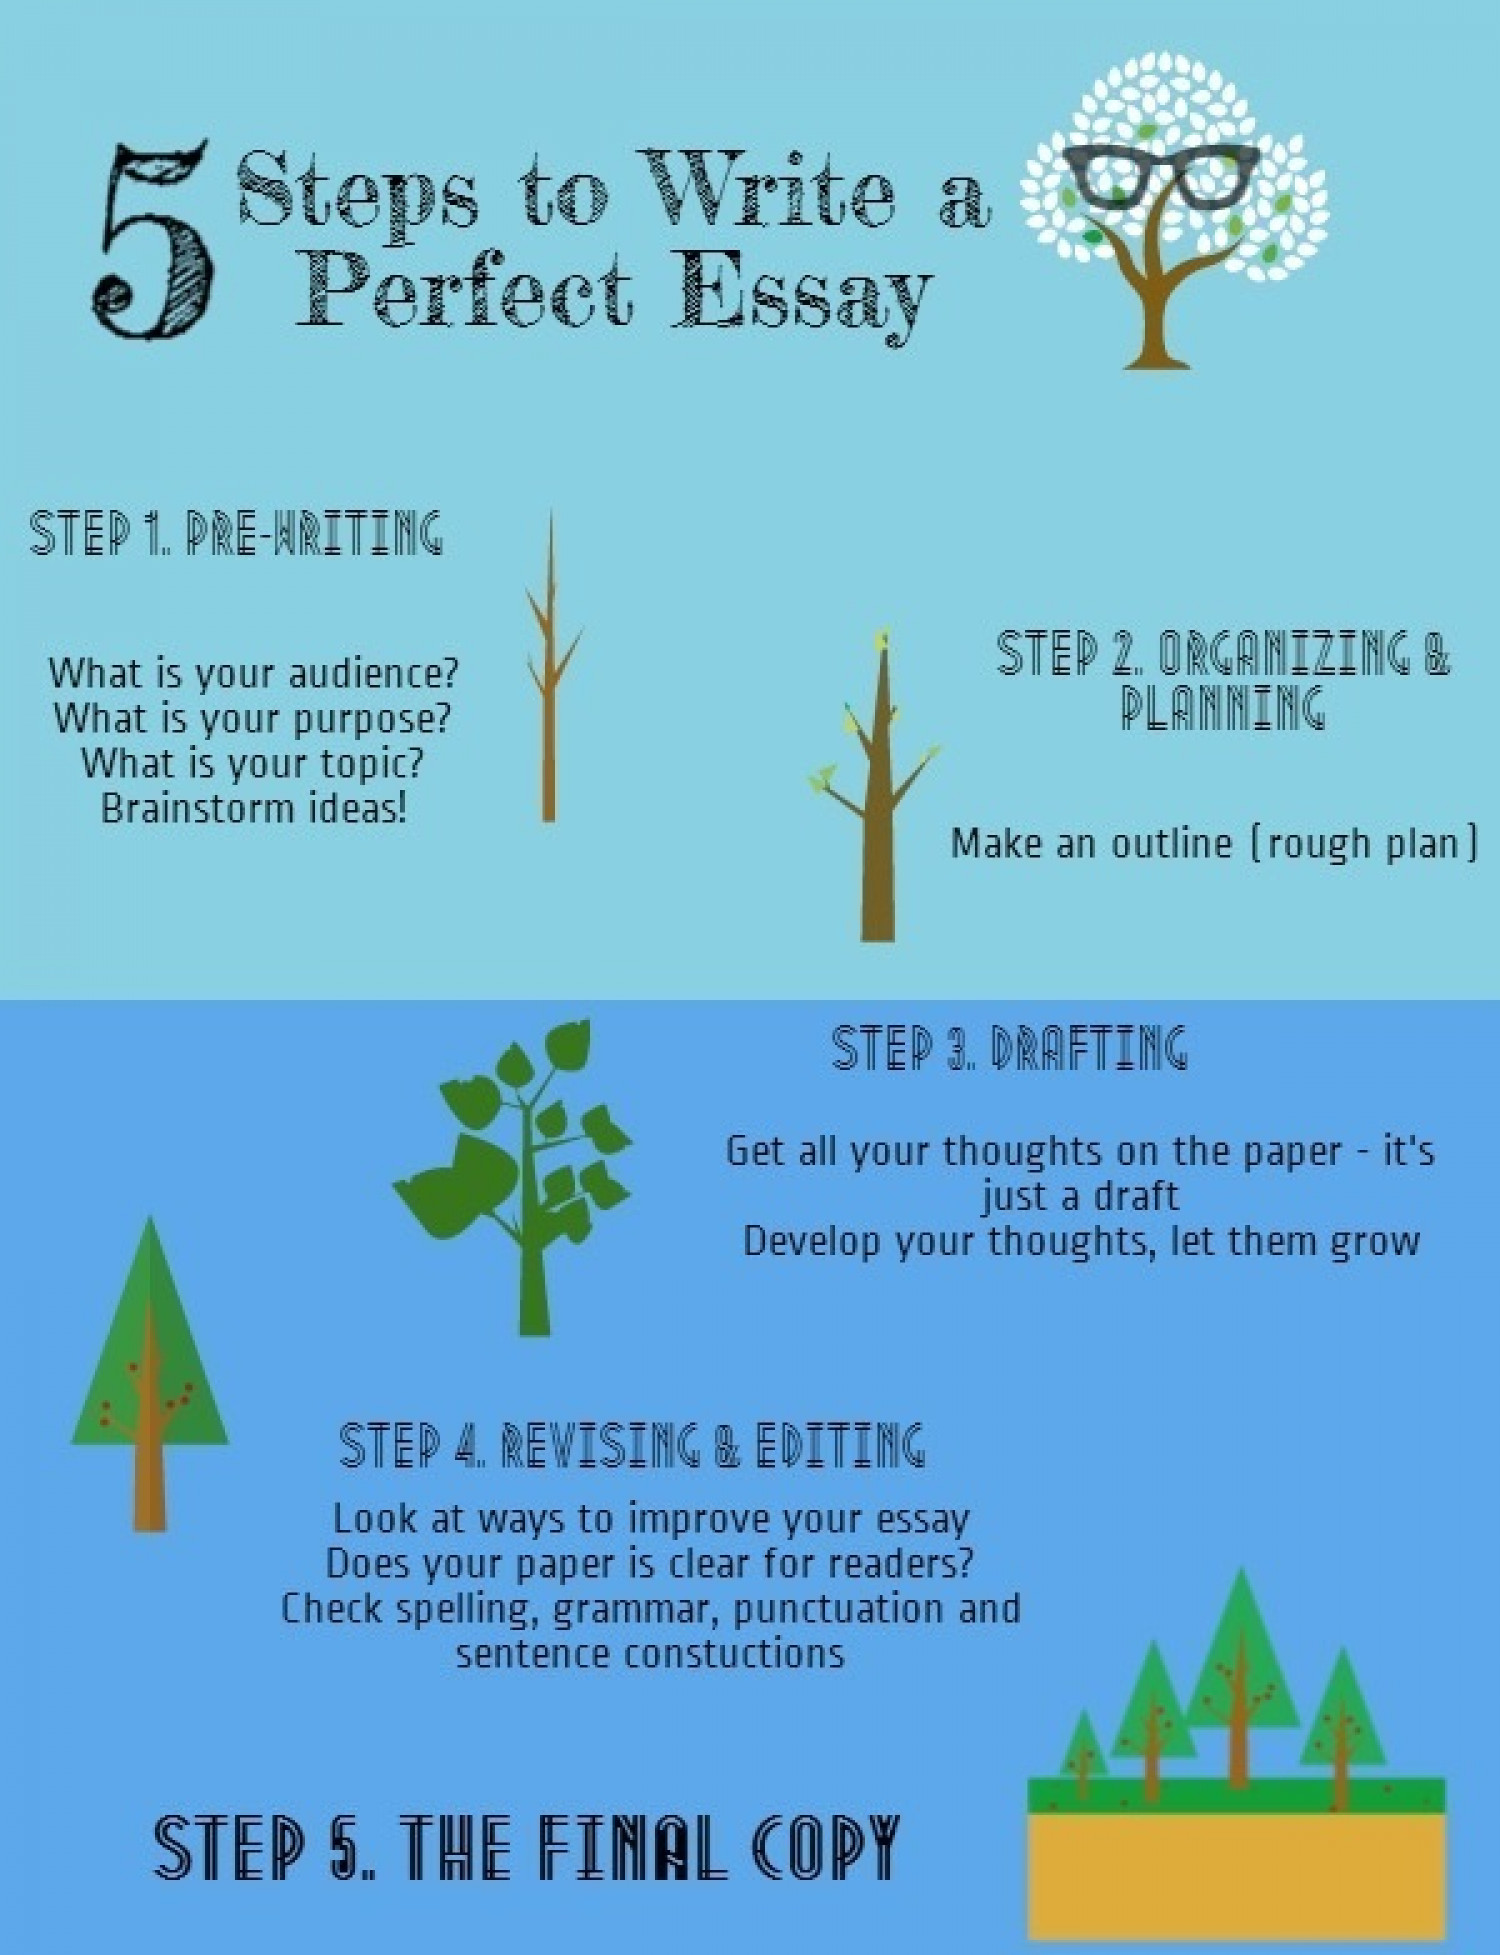 Essay On Indian Festival Steps To Write A Perfect Essay Ly  Steps To Write A Perfect Essay  Infographic Essay Writings also Success Definition Essay Excellent Essay Writing Steps To Write A Perfect Essay Ly Practice  Introduction Paragraph For Compare And Contrast Essay